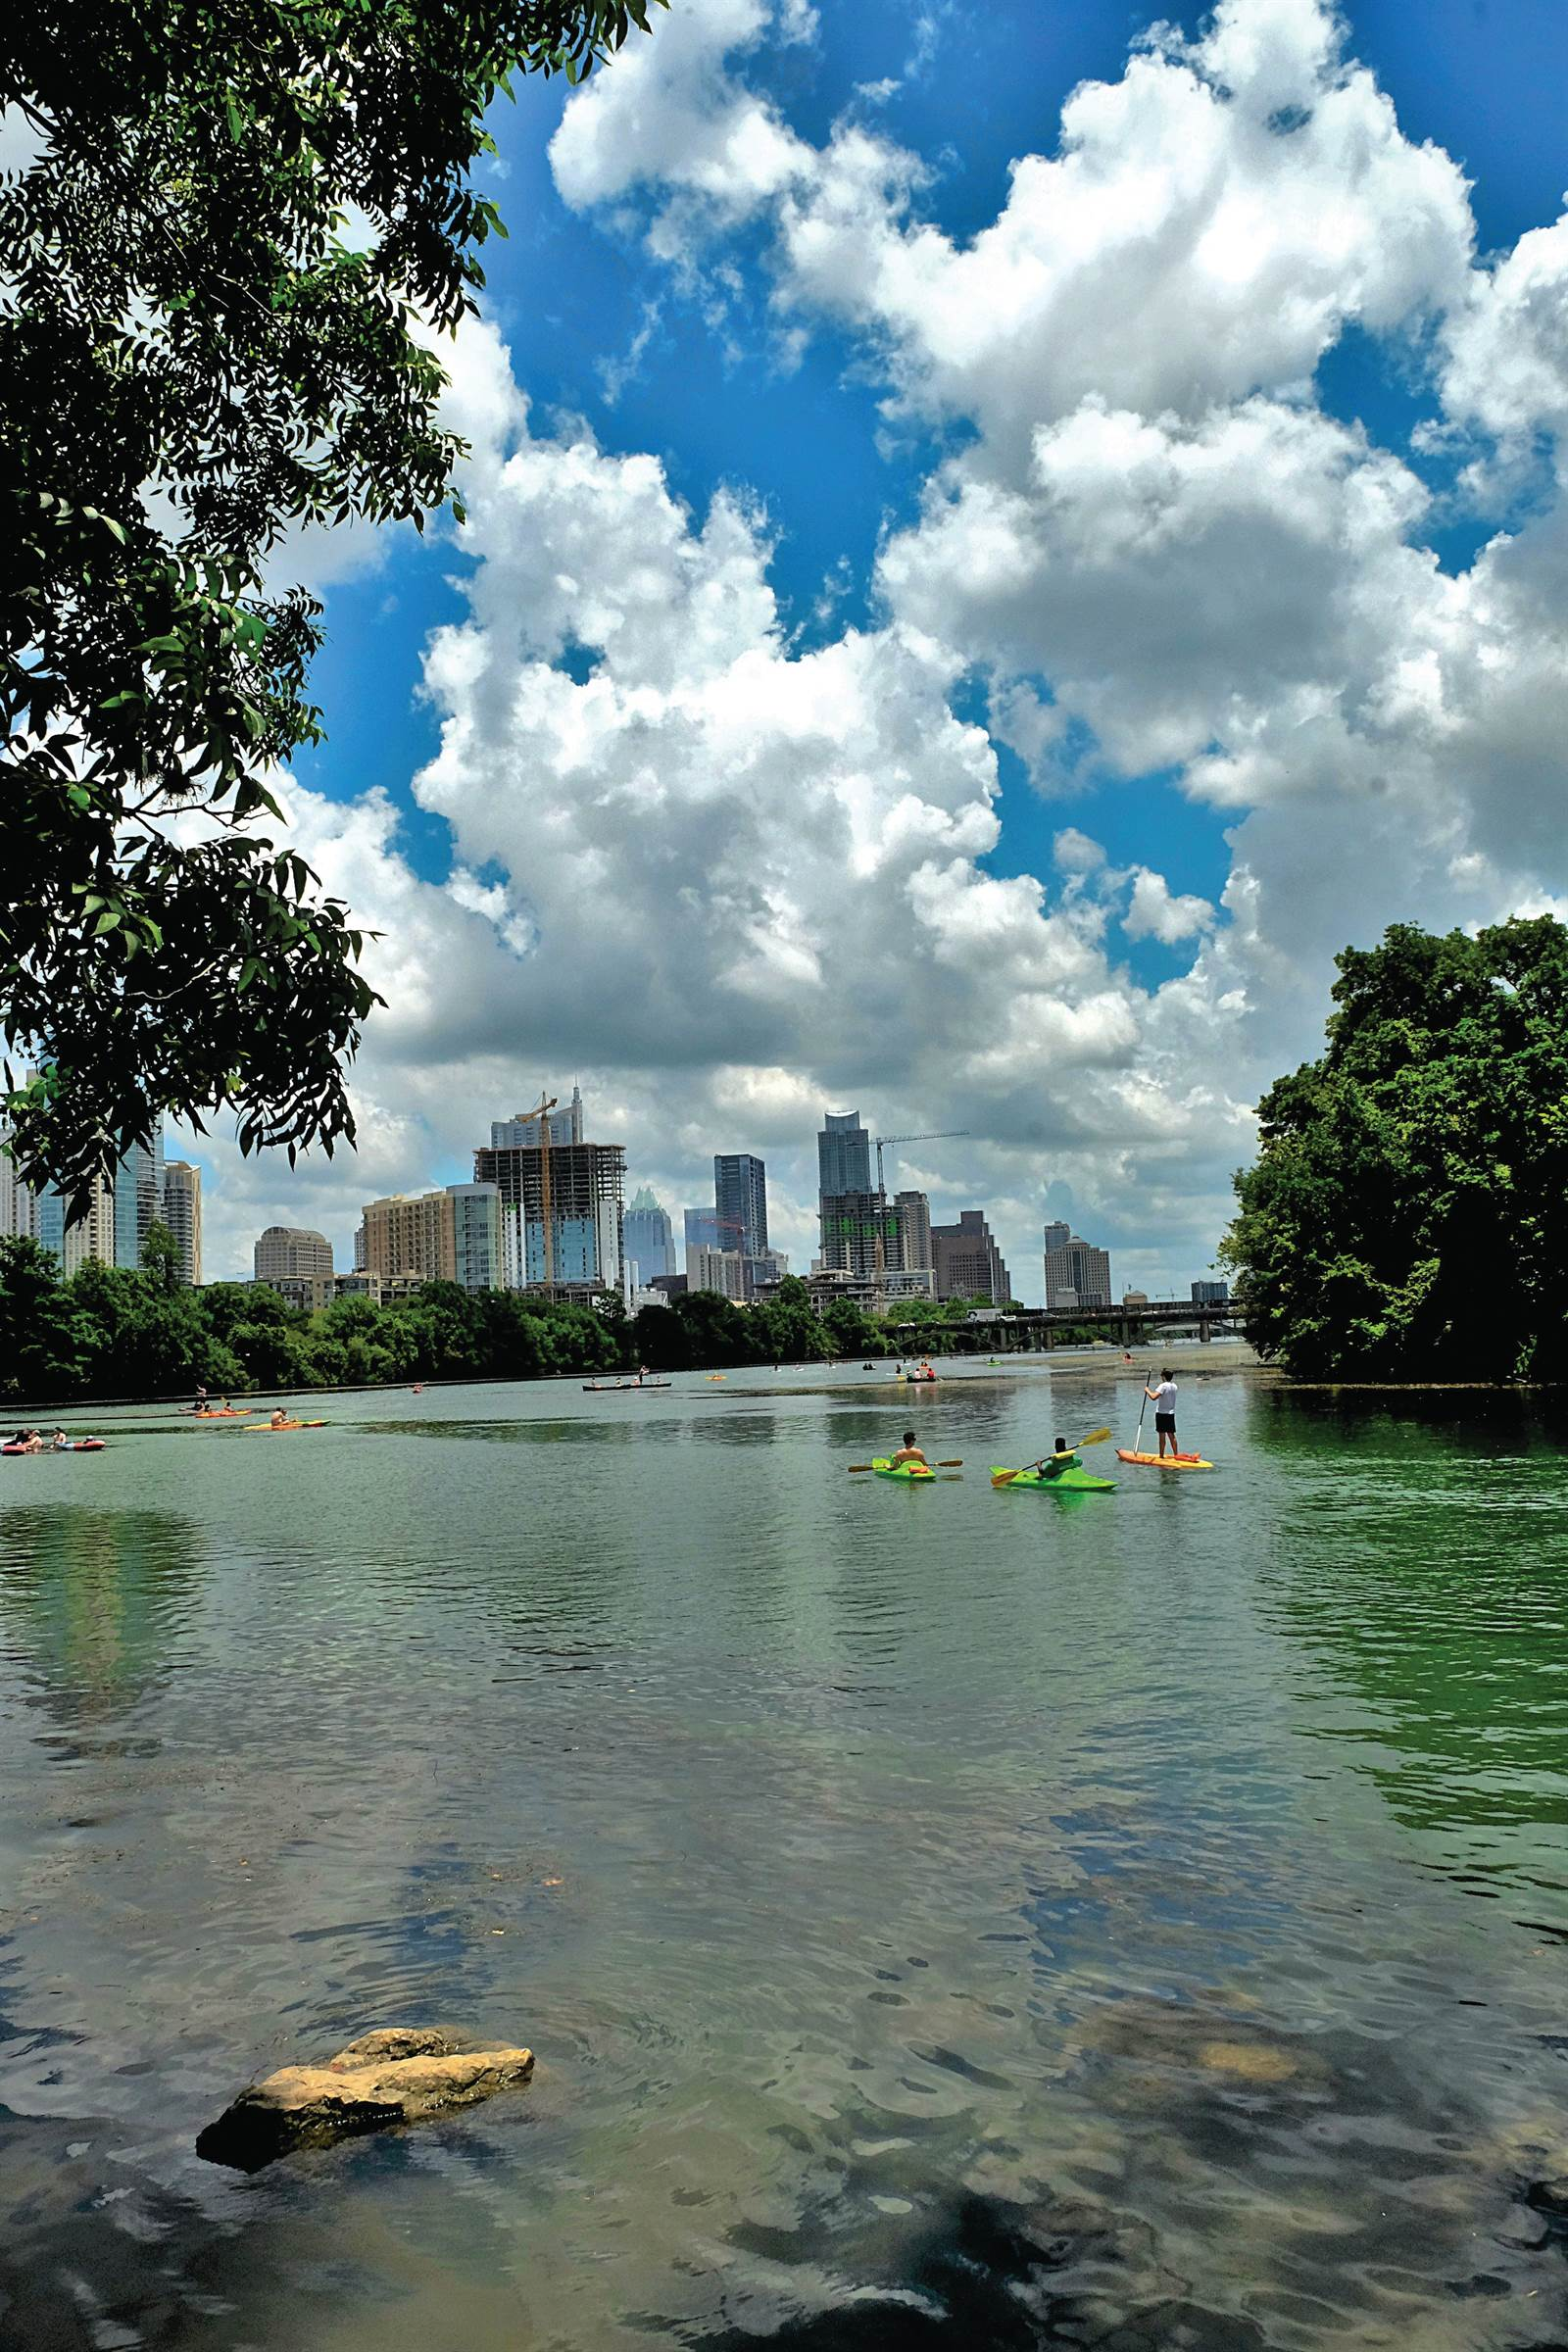 This week we jump to Austin, Texas. Boudin Creek, is one of the oldest neighborhoods in Austin, Texas and offers a truly artistic, bohemian vibe!